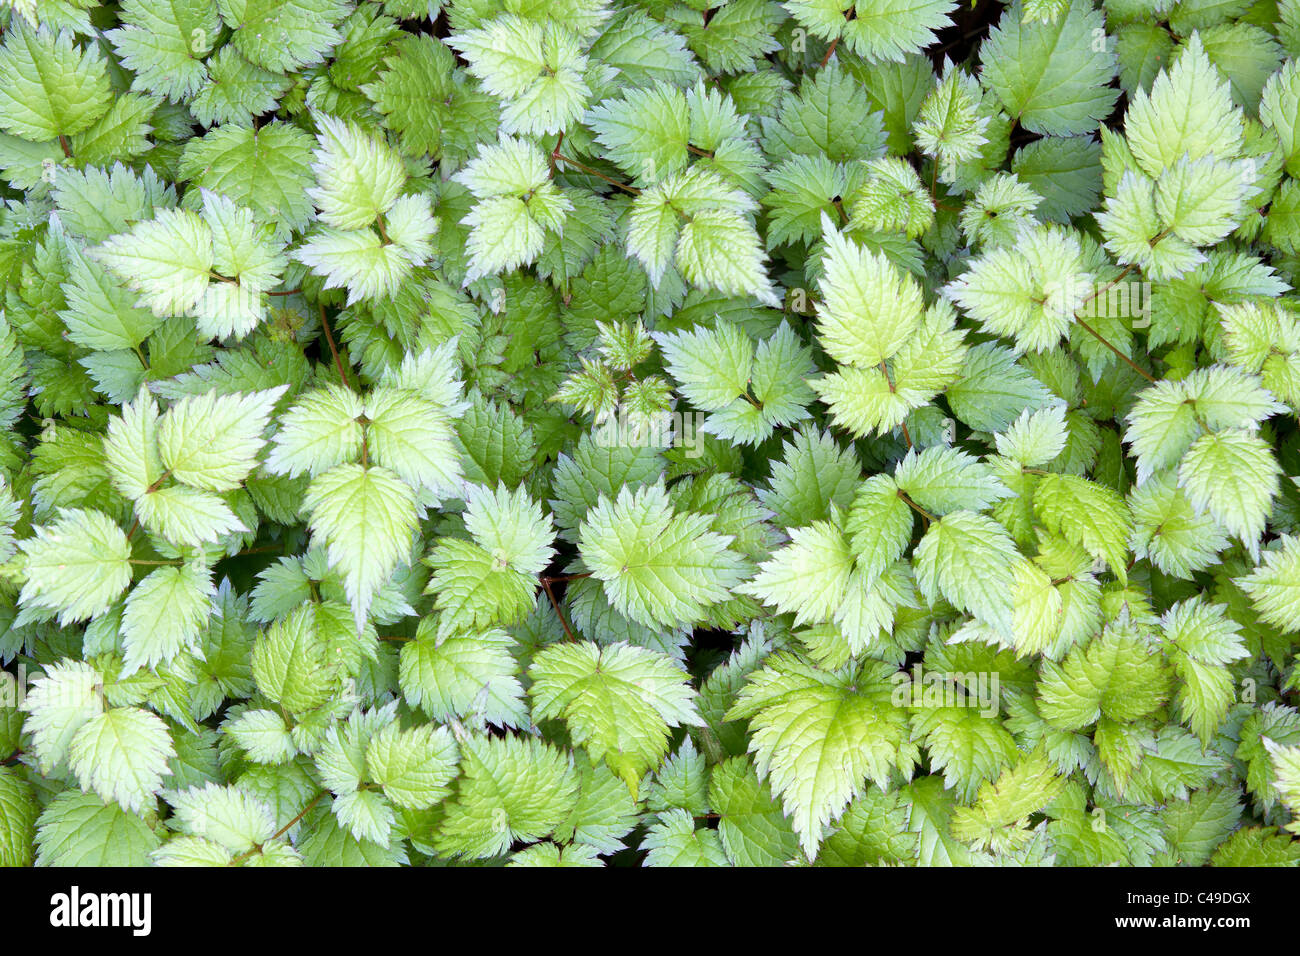 Astilbe Herbaceous Perennial Plant Leaves Background - Stock Image